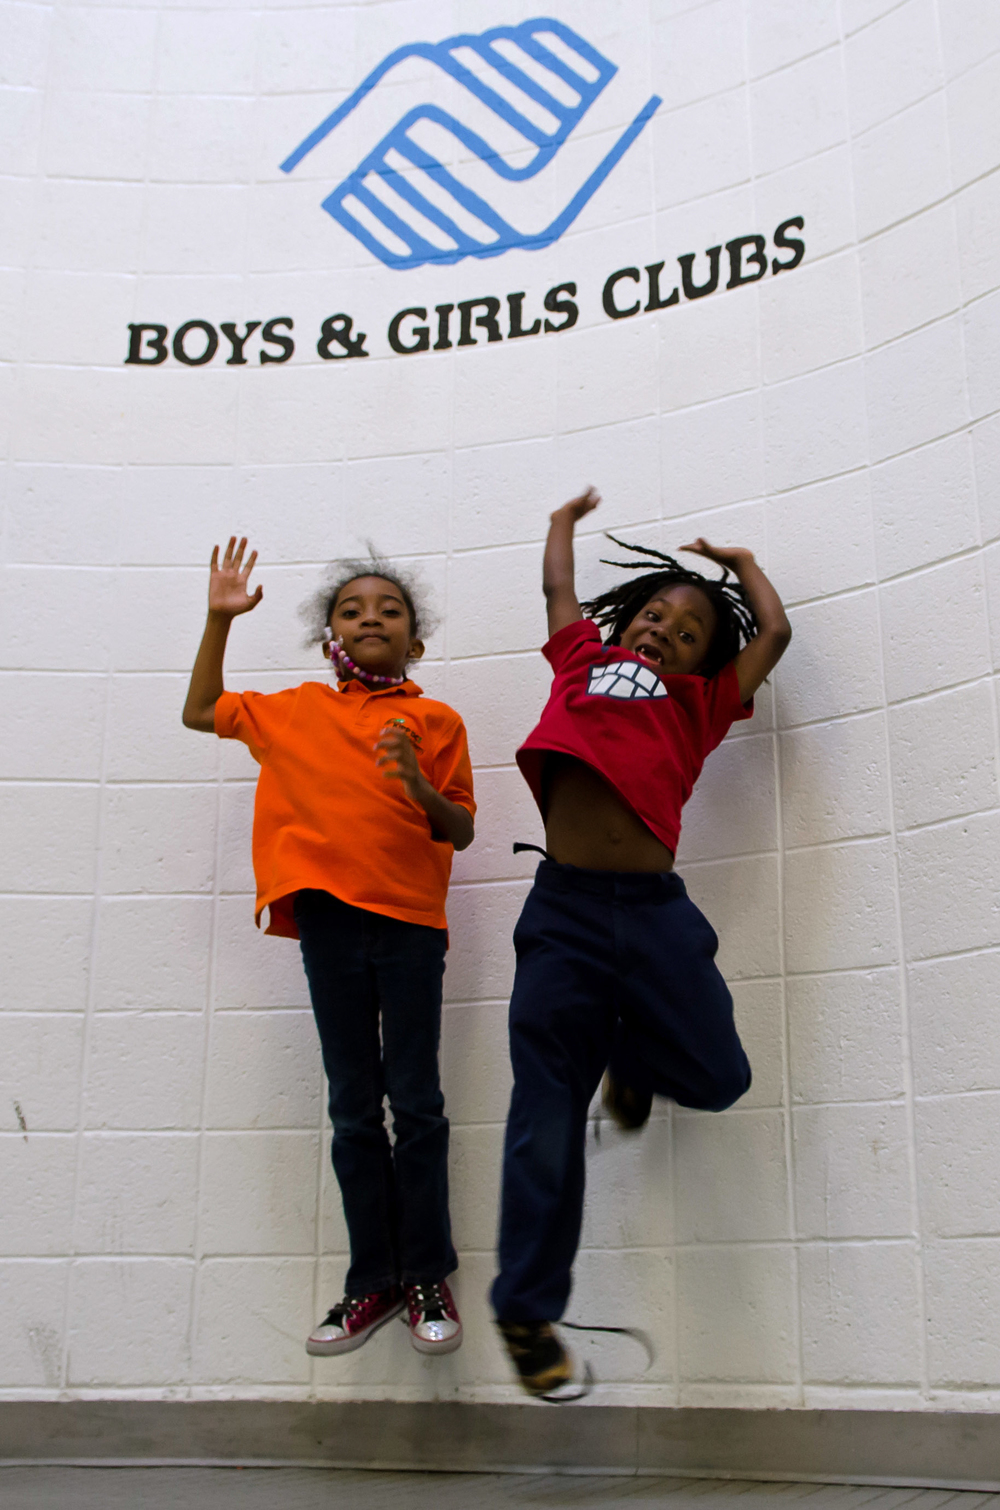 Boys and Girls Clubs of Greater Washington, Clubhouse #14, Washington, DC.